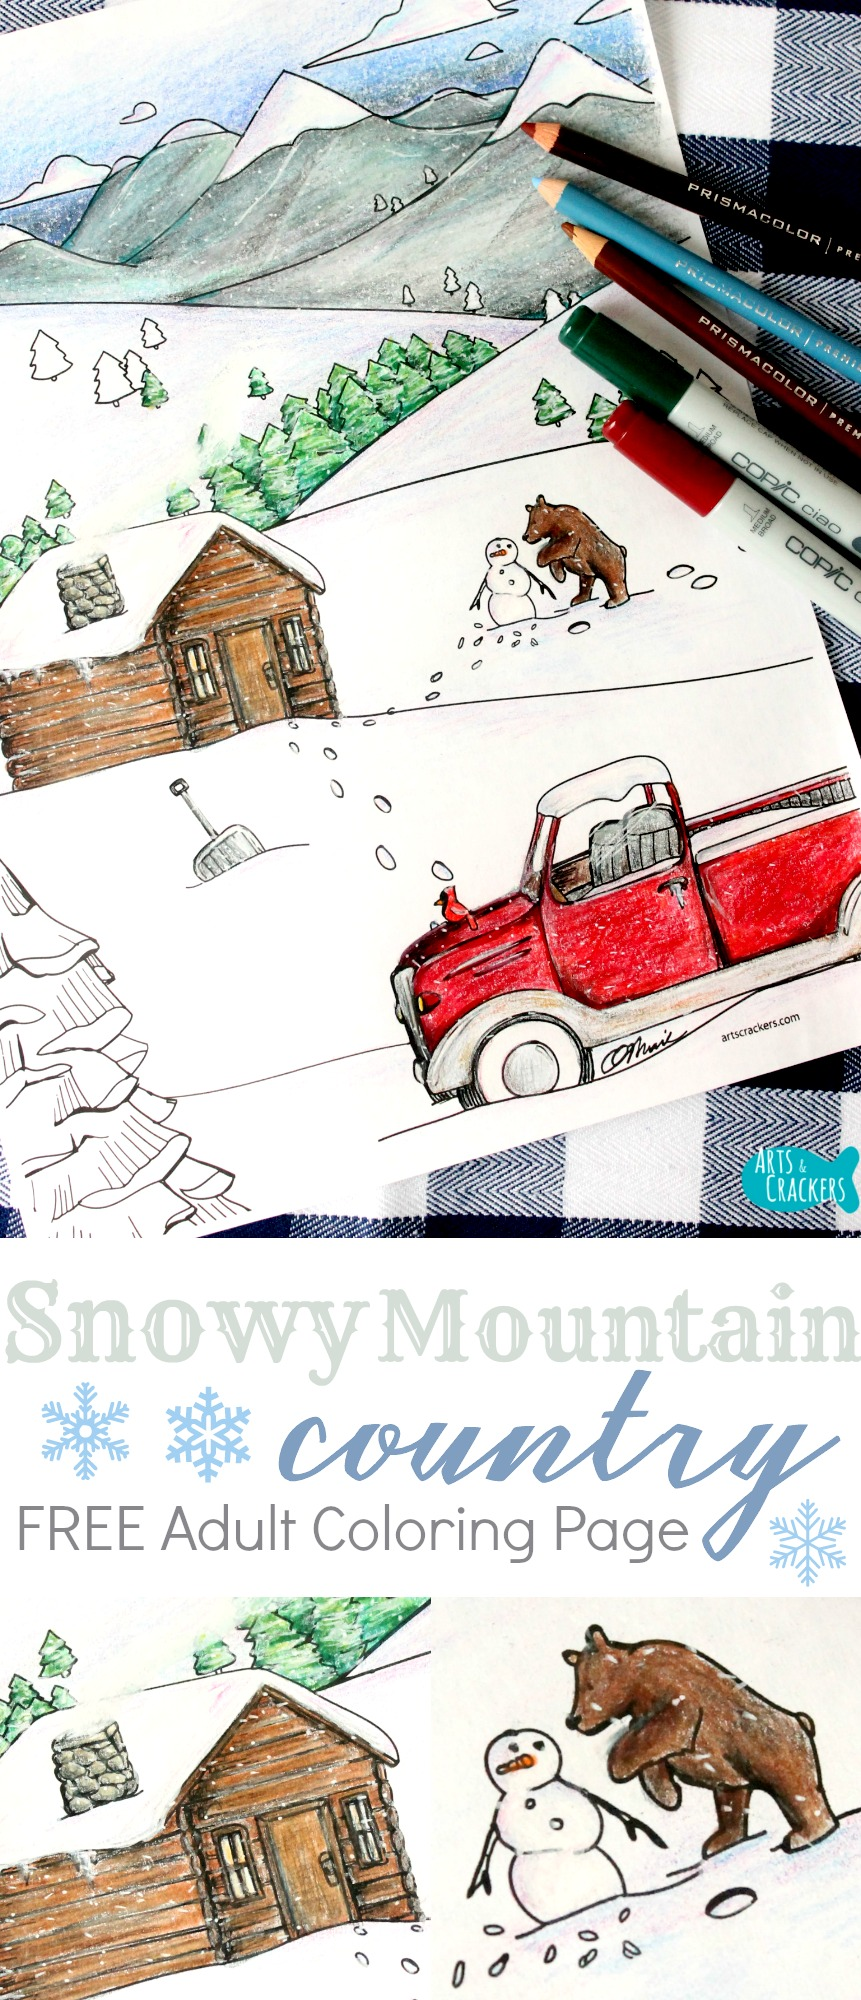 This Free Adult Coloring Page Captures The Snowy Mountain Country Landscape